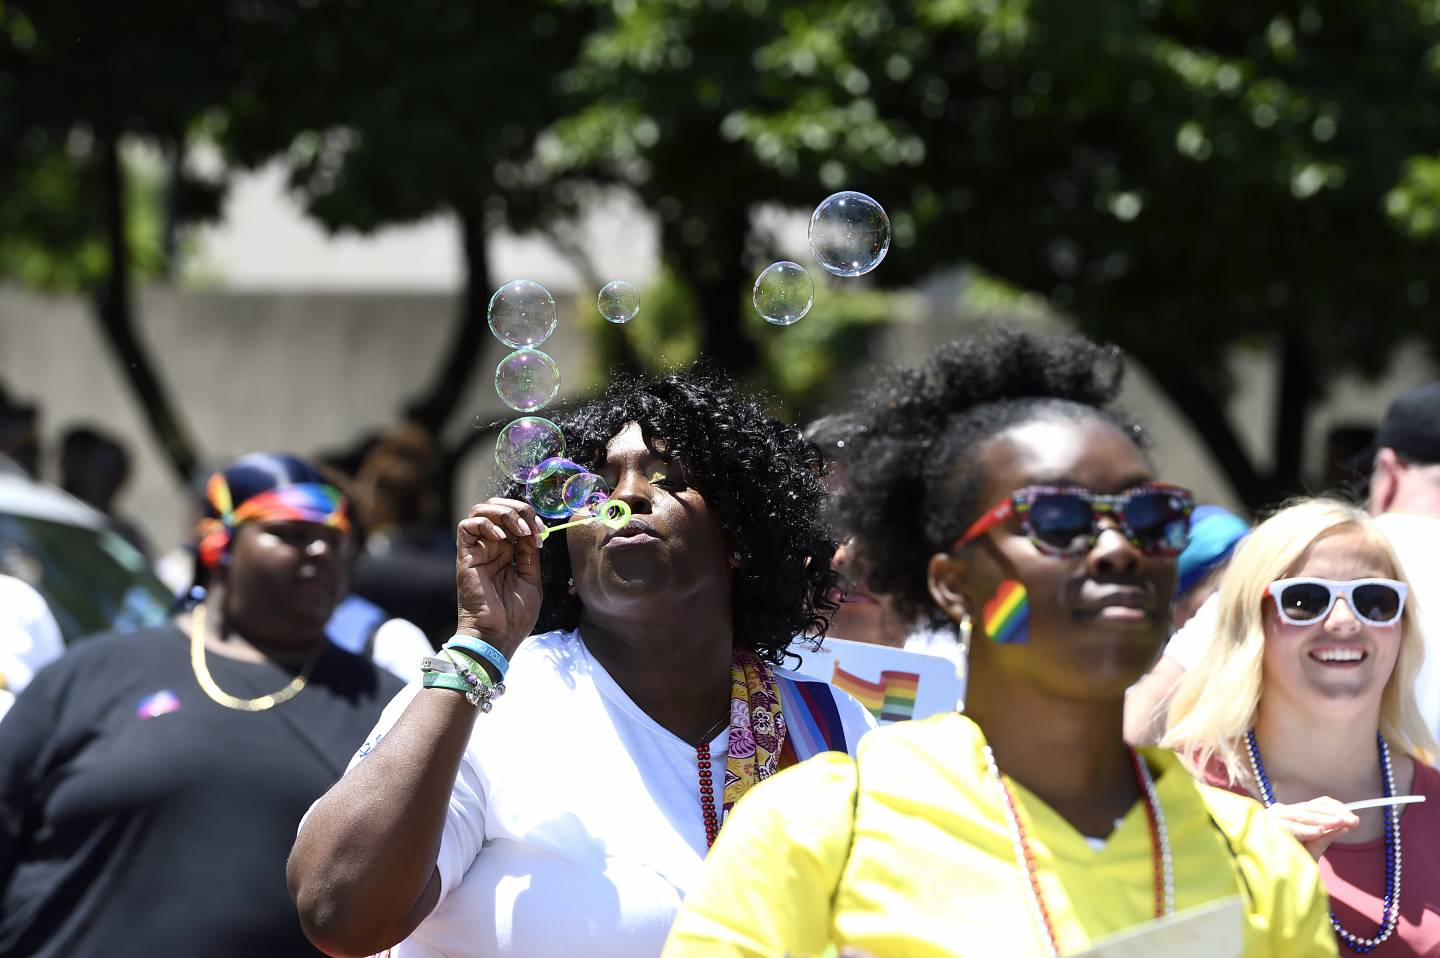 A woman blows bubbles at Pride